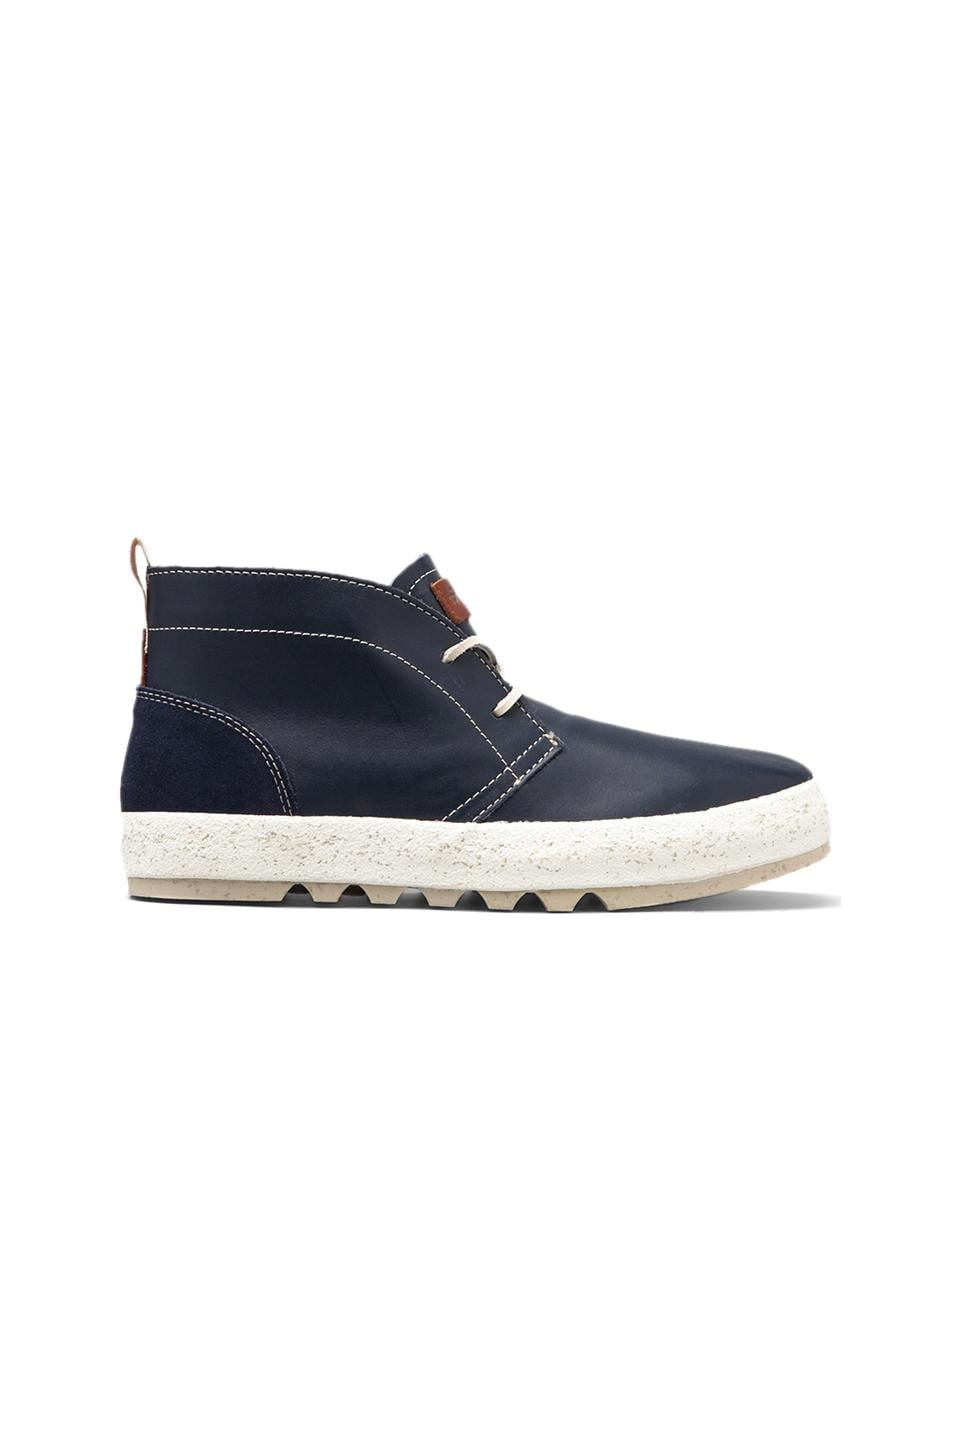 PF Flyers Beeson Chukka in Navy